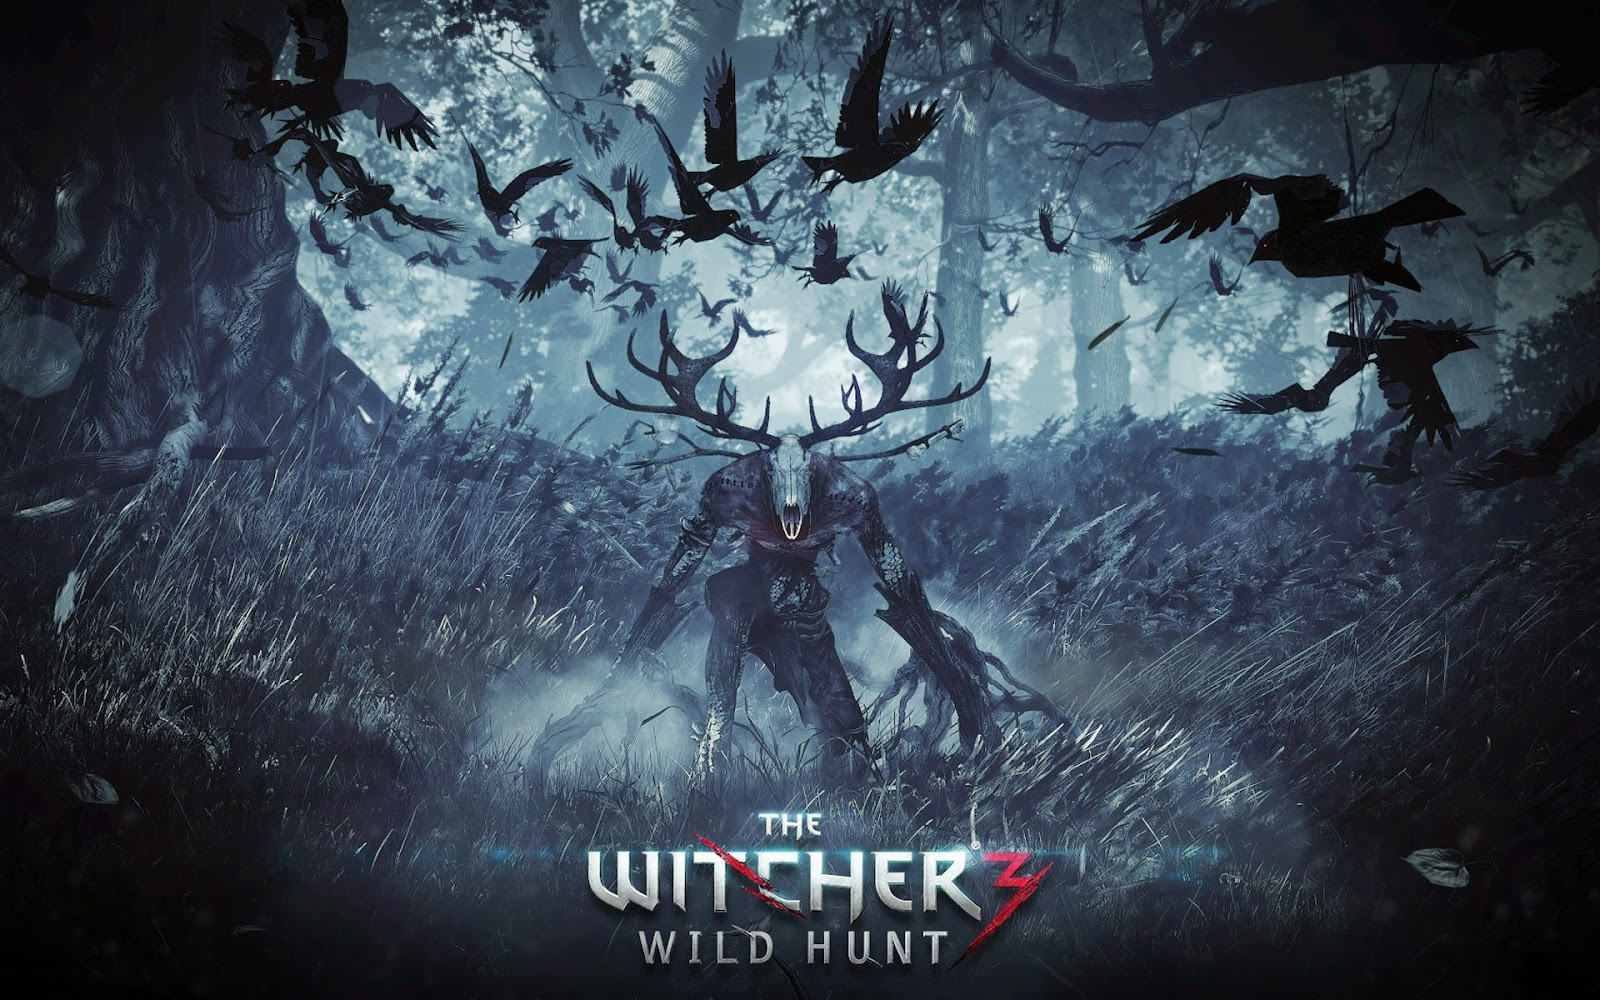 Witcher 3 Game